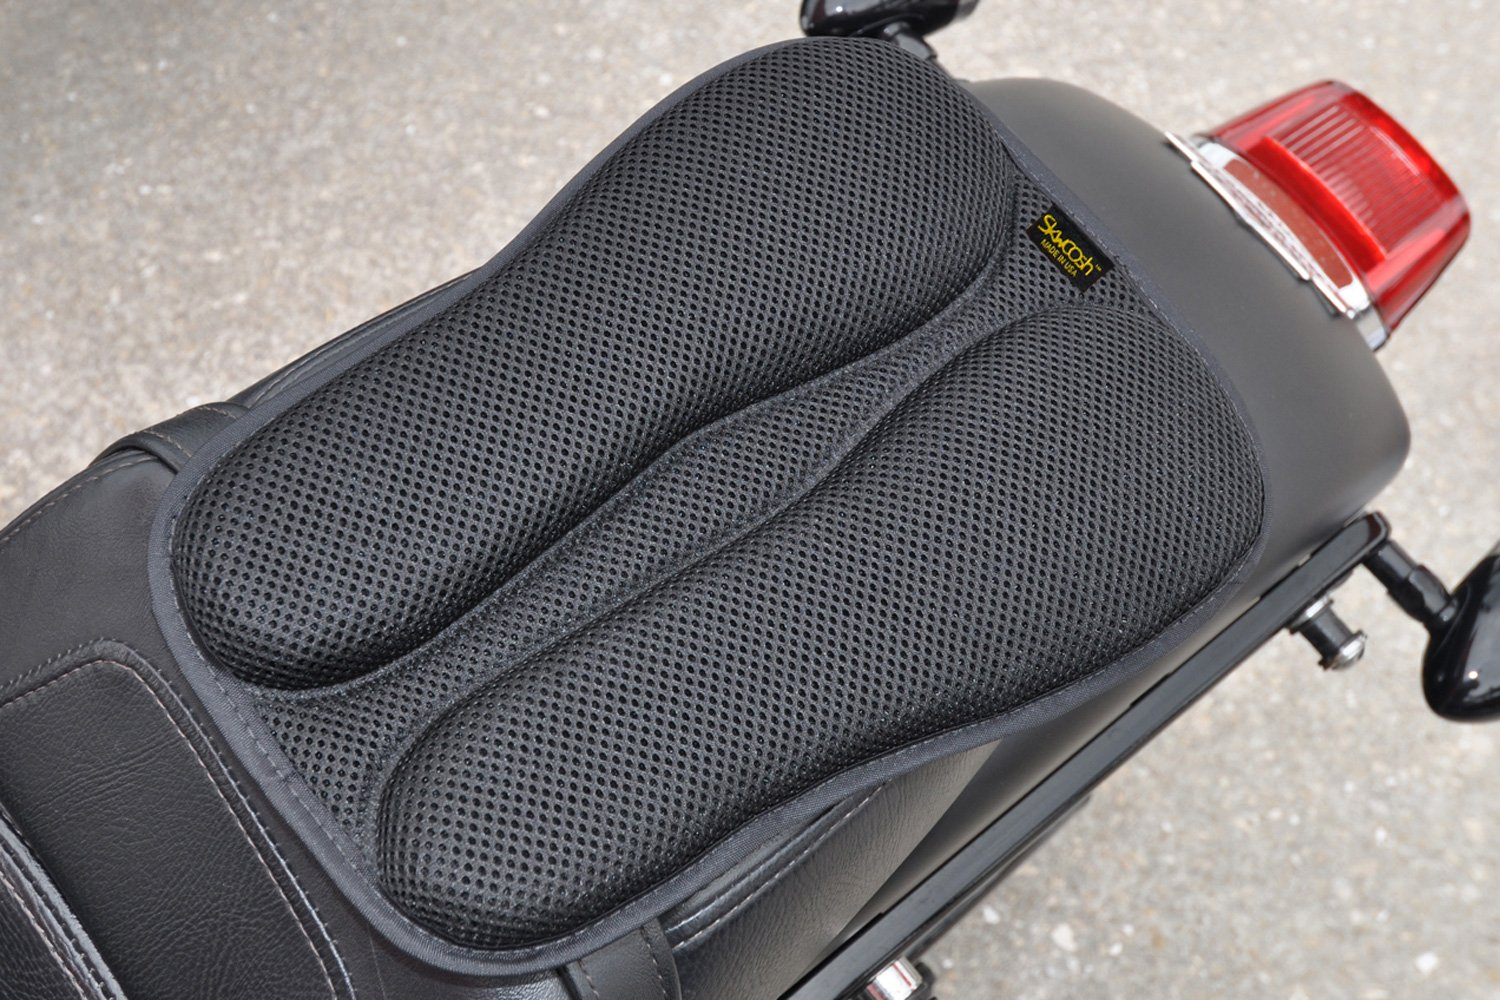 SKWOOSH Passenger Pillion IV Motorcycle Gel Rear Seat Pad with Breathable Cooling Mesh Fabric | Made in USA by Skwoosh